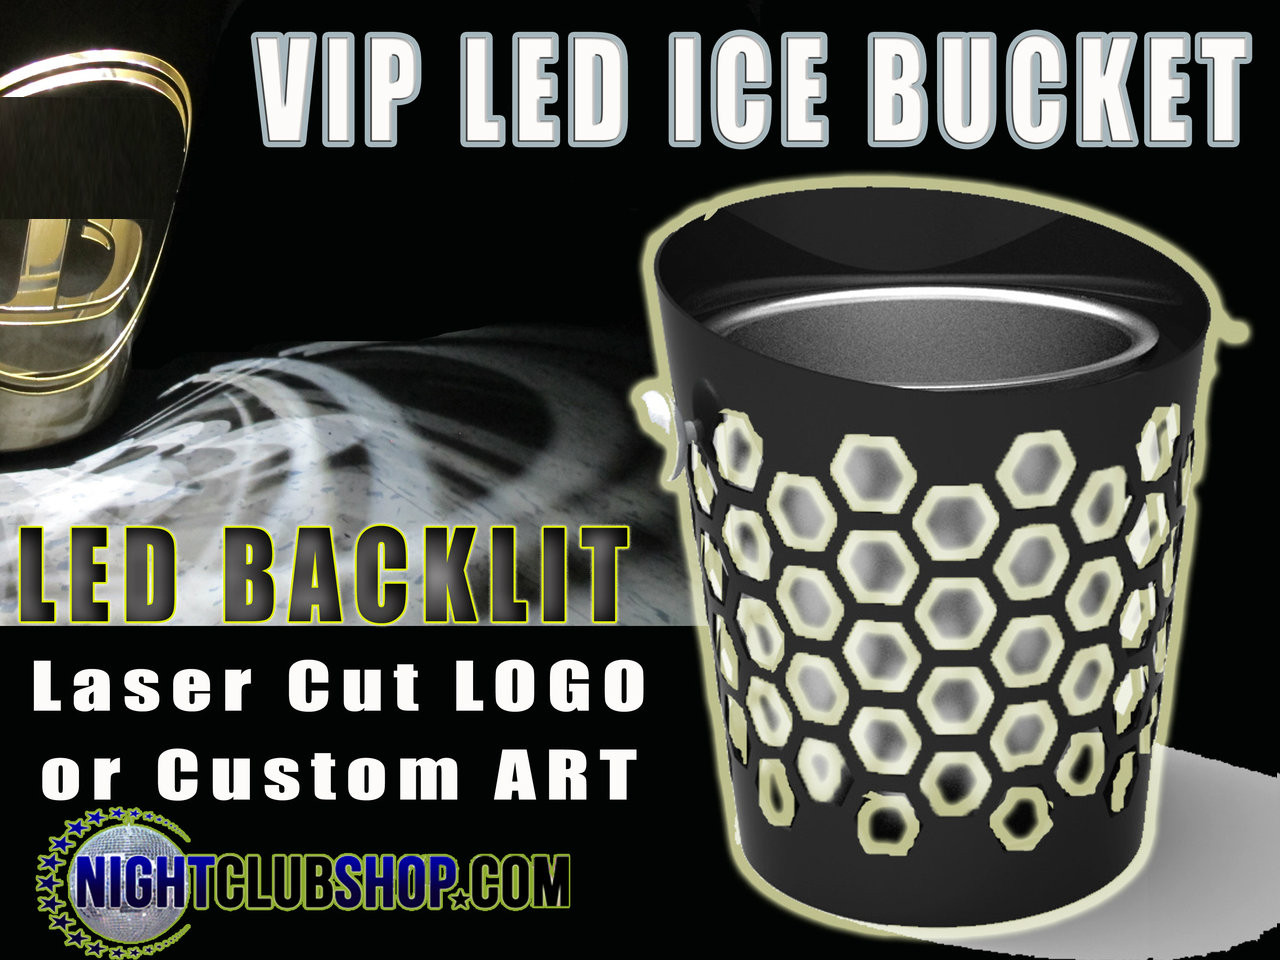 VIP, LED, ICE, BUCKET, CUSTOM, BRANDED, CUT, LOGO, CHAMPAGNE